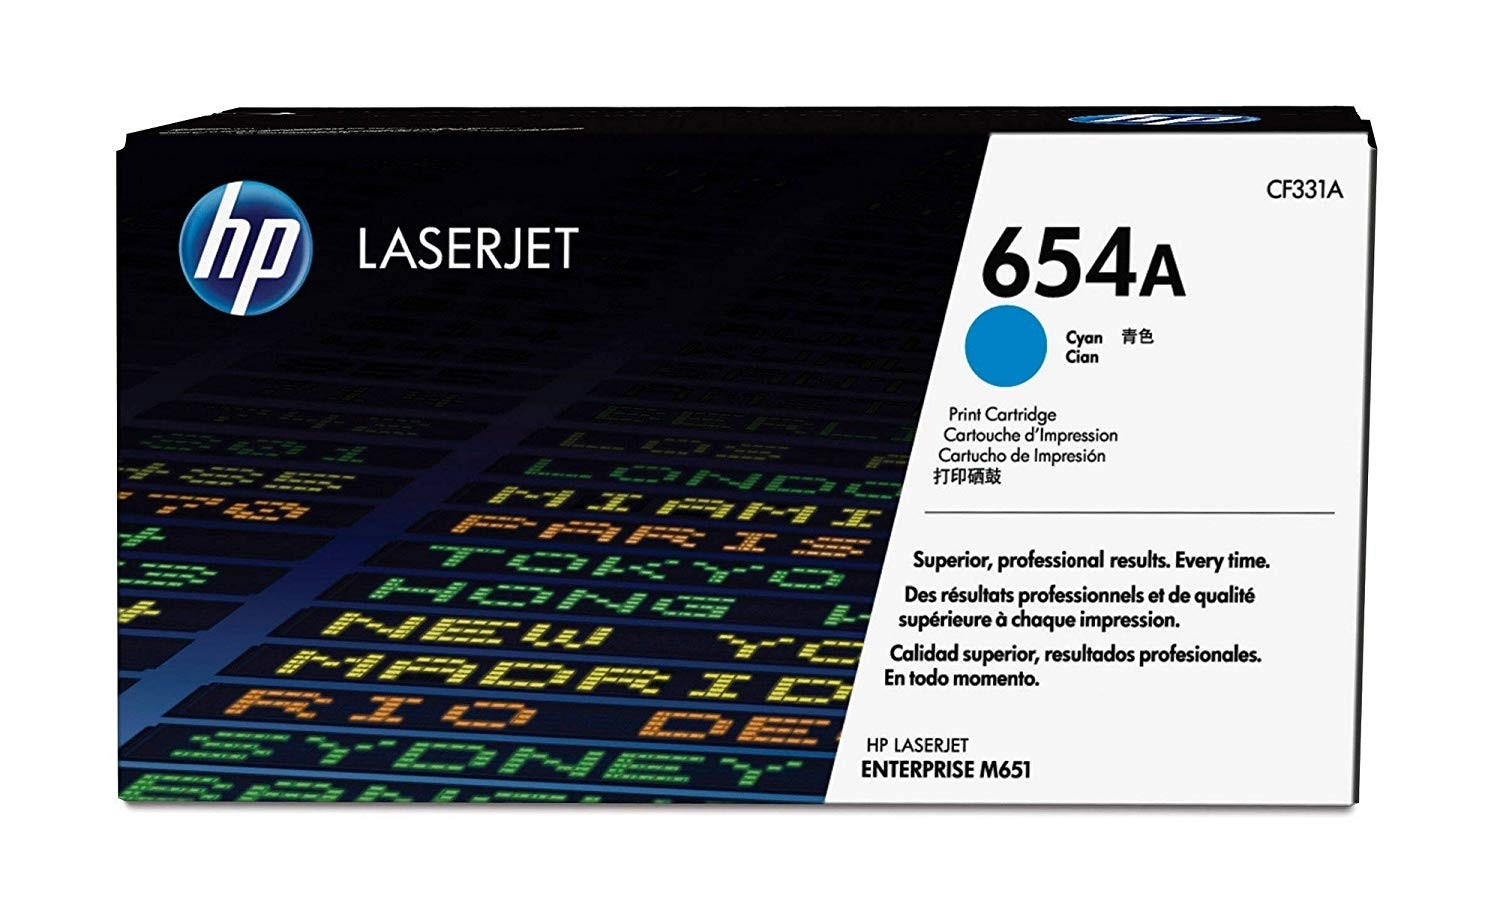 Genuine HP 654A Cyan Original LaserJet Toner Cartridge (CF331A)